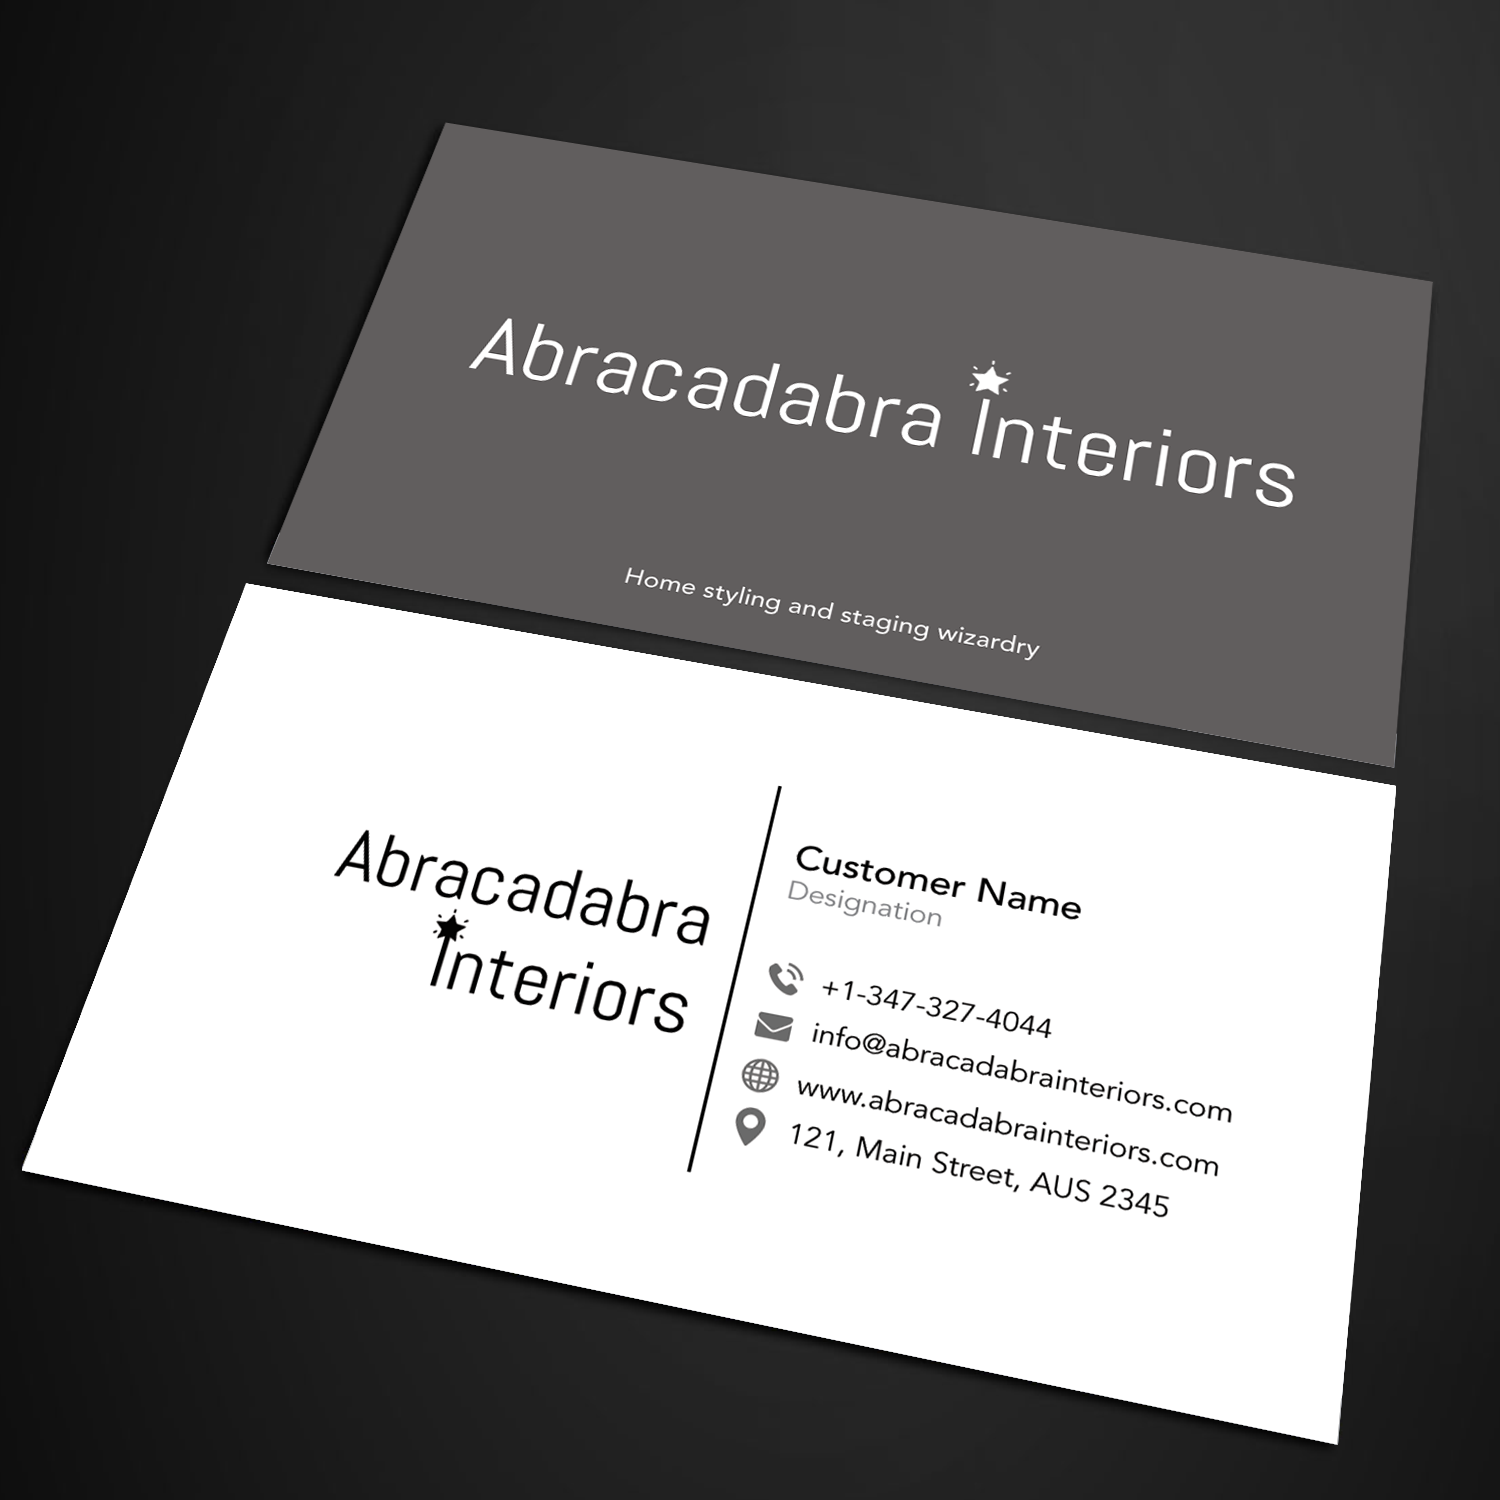 Elegant modern real estate business card design for abracadabra business card design by sandymanme for abracadabra interiors design 18392187 reheart Image collections